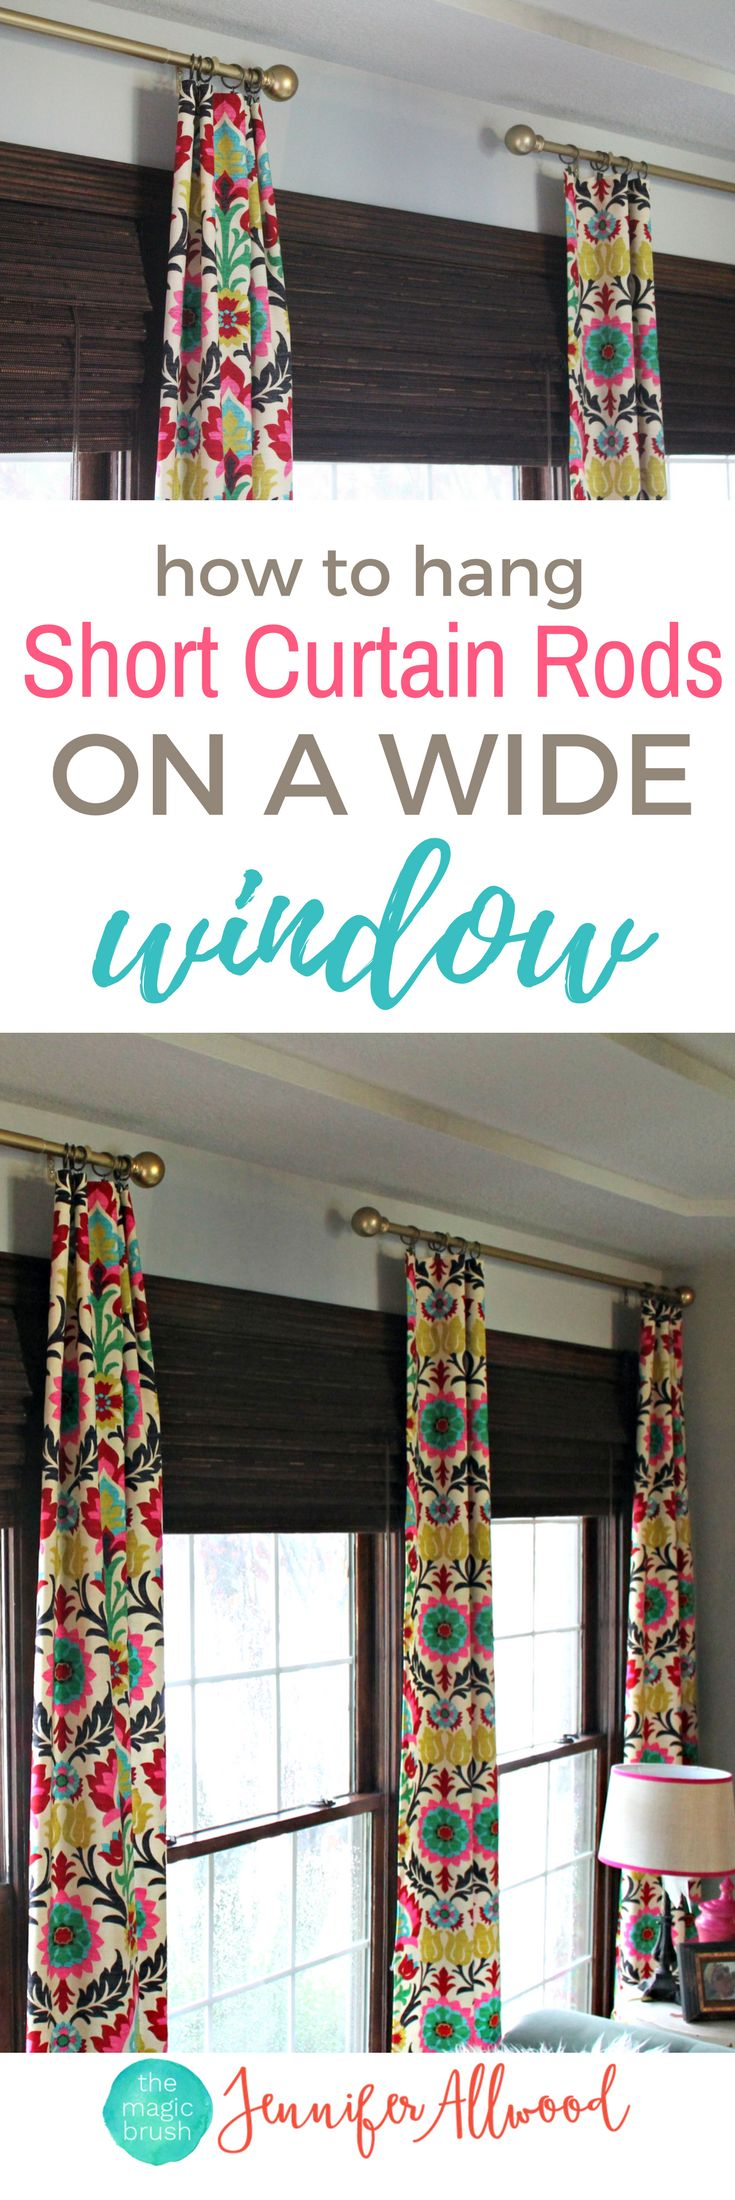 how to hang short curtain rods on a wide window | long window treatment ideas for long windows  | matching curtain rods | curtain ideas and decorating ideas by The Magic Brush